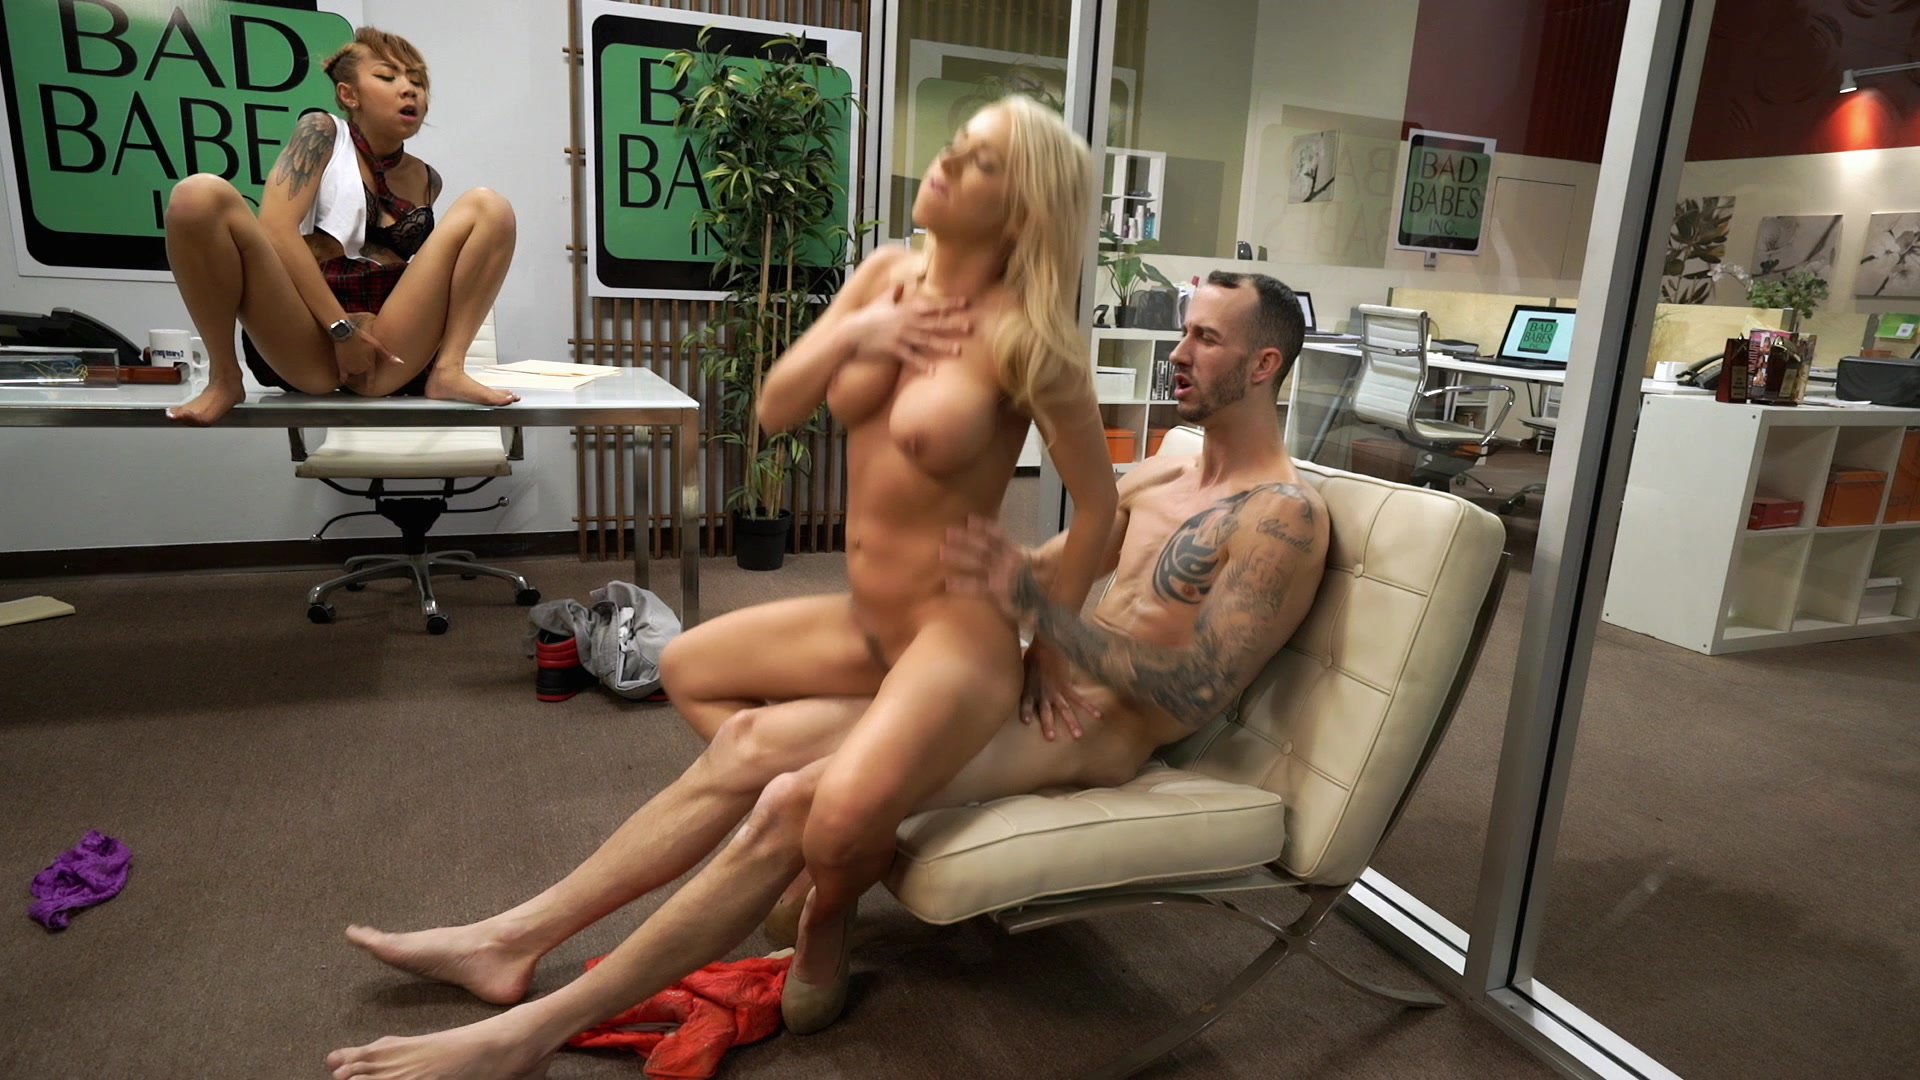 Scene with Katie Morgan and Kimberly Chi - image 18 out of 20